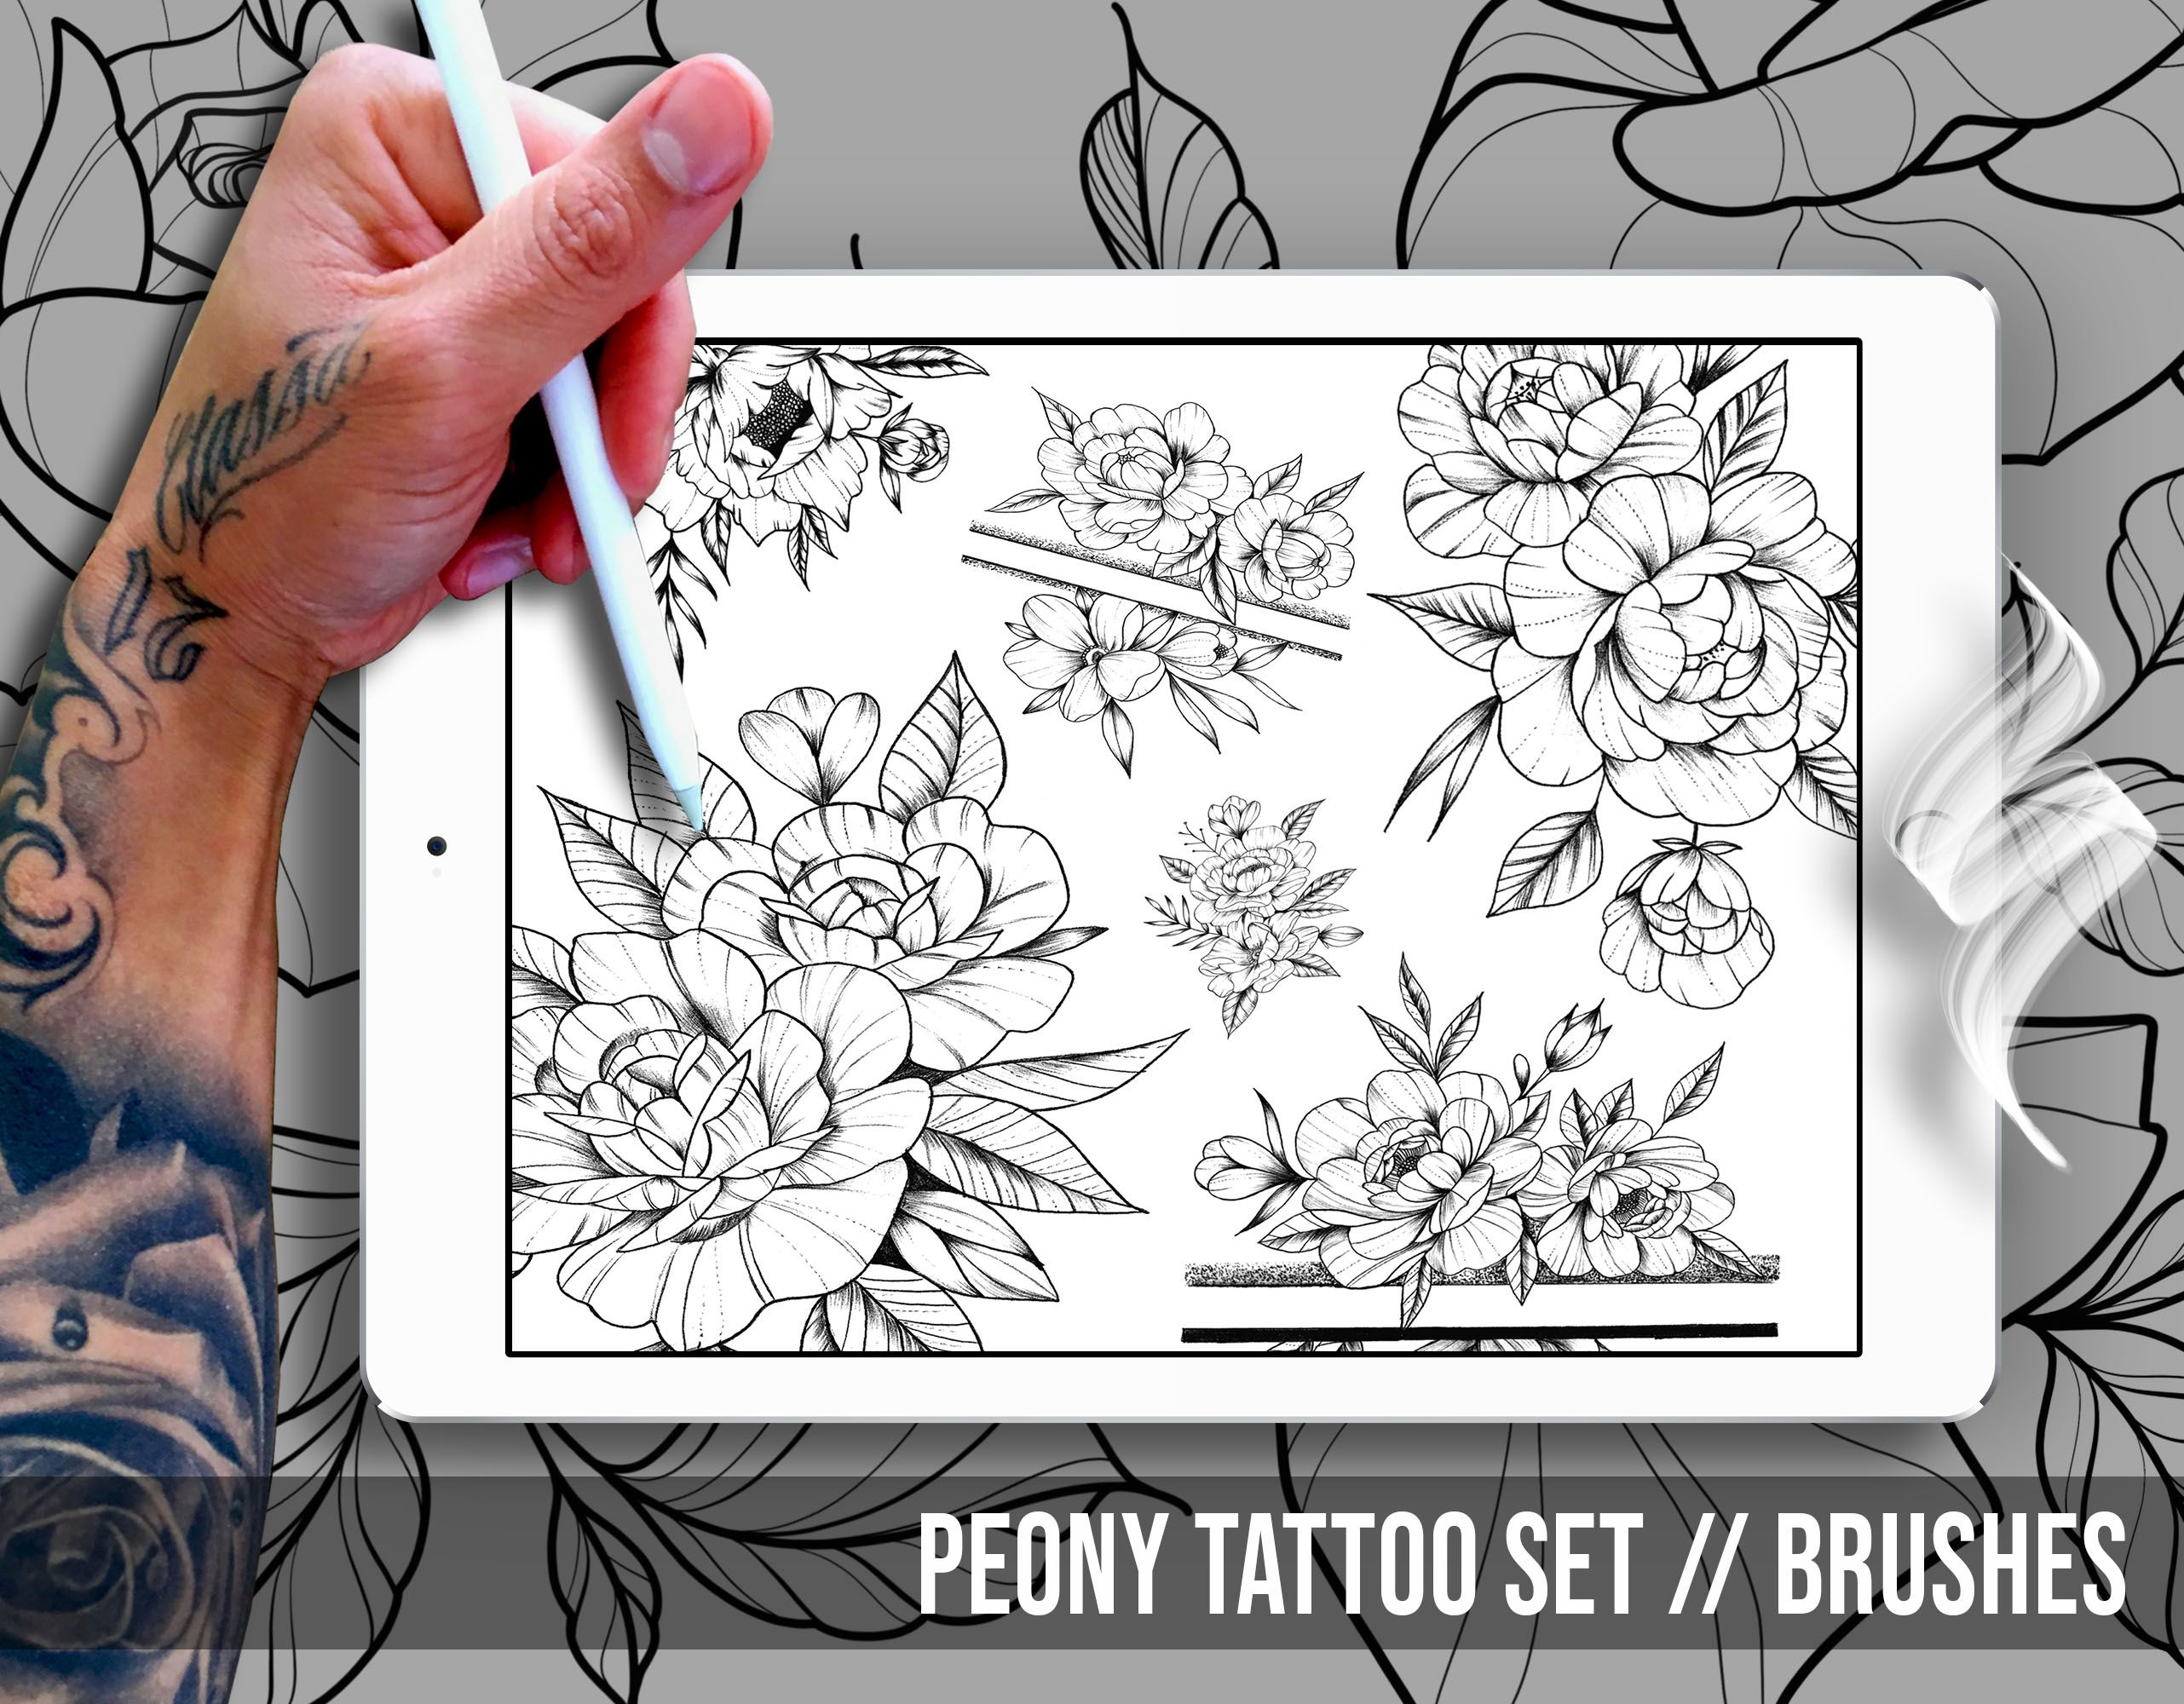 Peony tattoo set brushes for procreate in 2020 tattoo